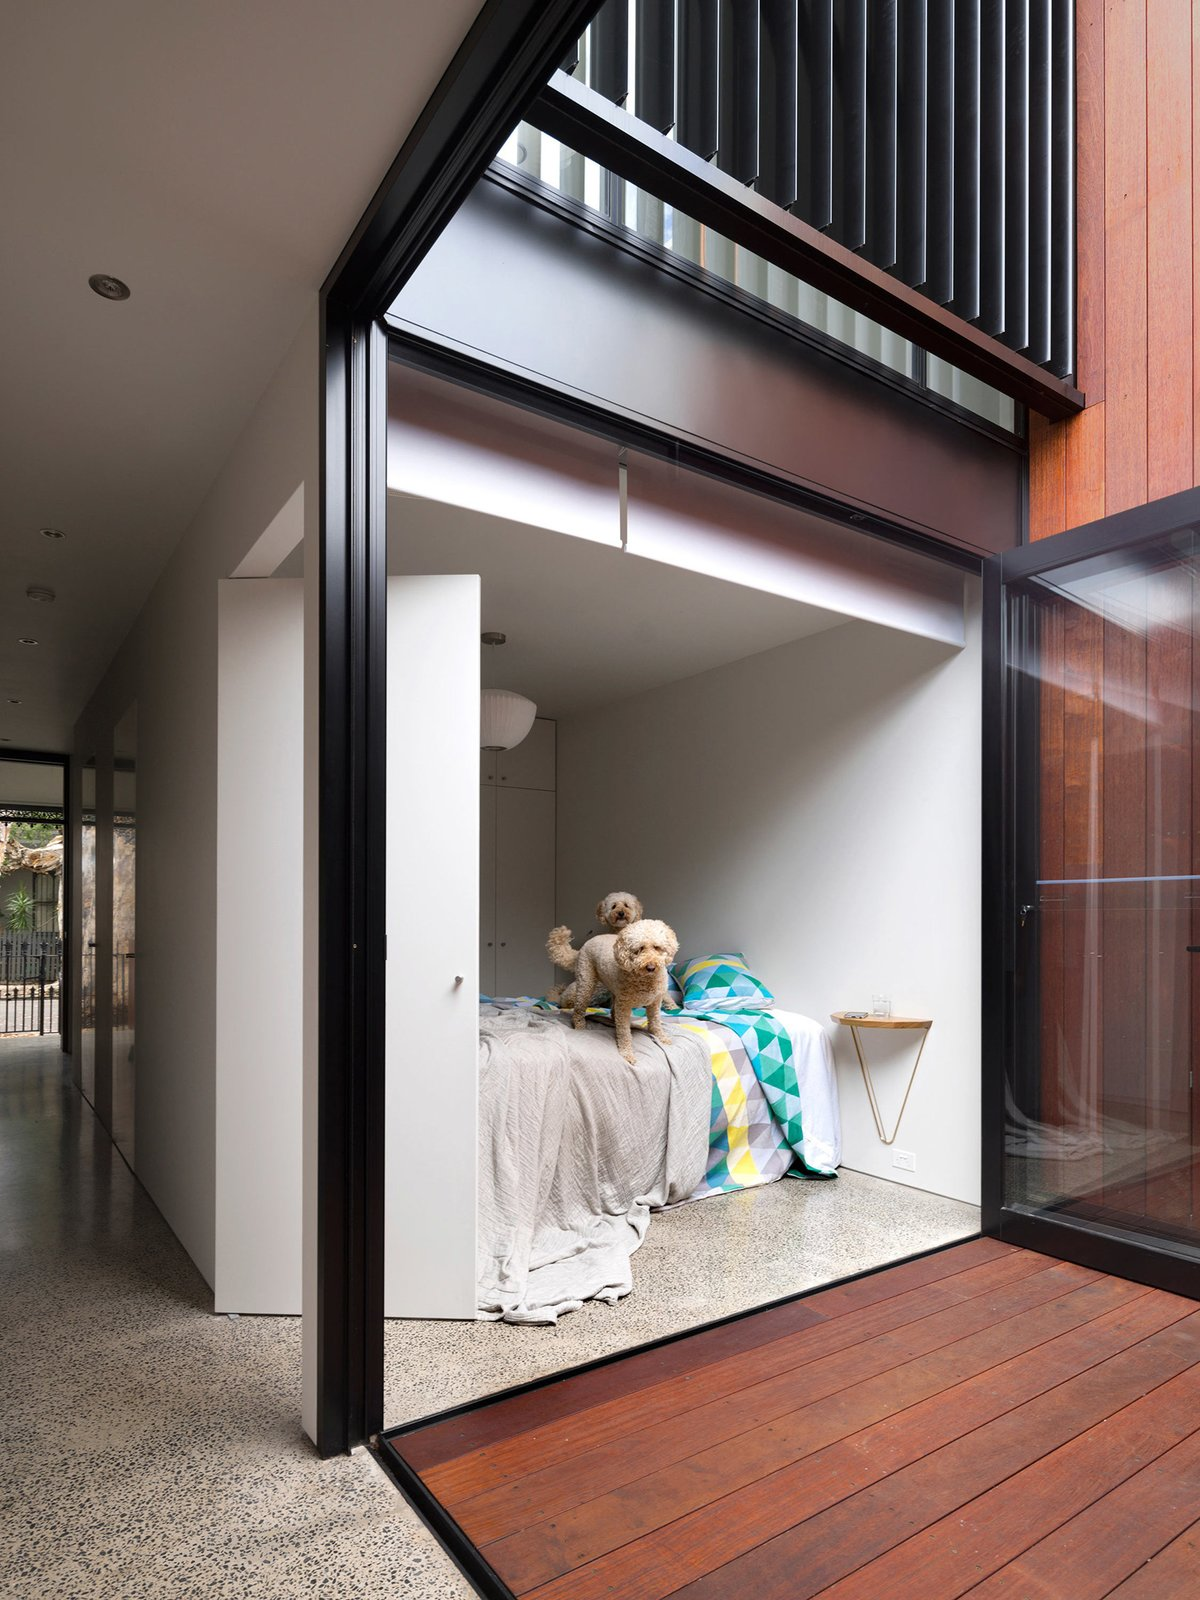 """An internal courtyard anchors the house while ushering in air and light. Its materials echo those used in the rear yard. """"You get a glimpse of both outdoor spaces when walking through the house,"""" Abicic says.  Photo 5 of 7 in Renovated 19th-Century Terrace House Merges with the Outdoors"""